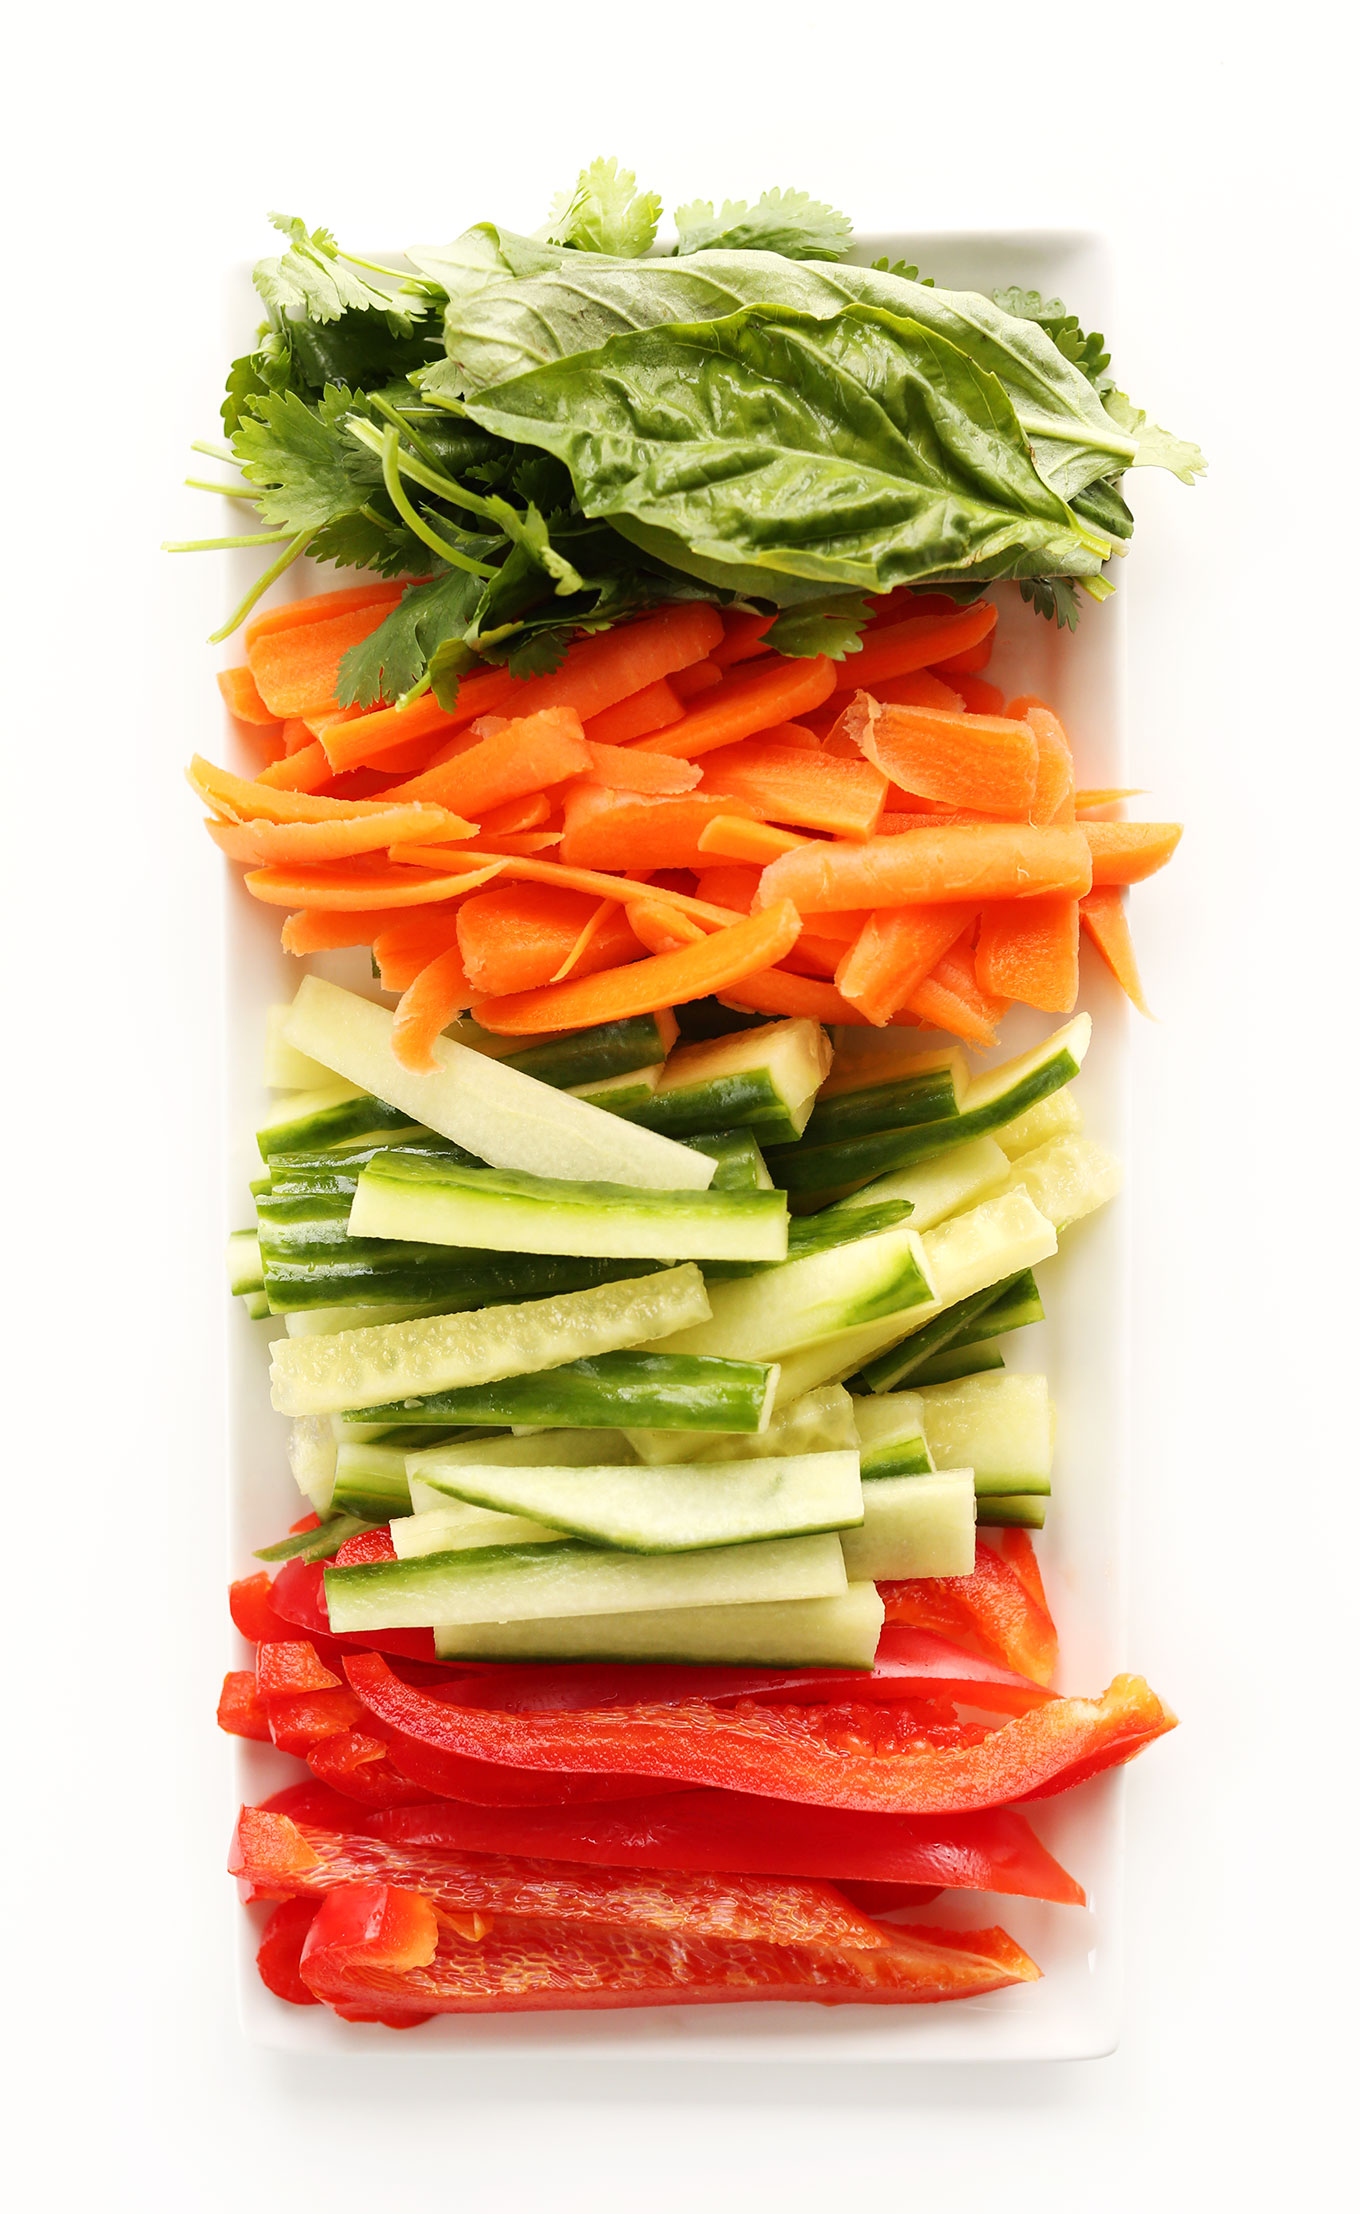 Platter of fresh basil, carrots, cucumber, and red bell pepper for making healthy Quinoa Spring Rolls